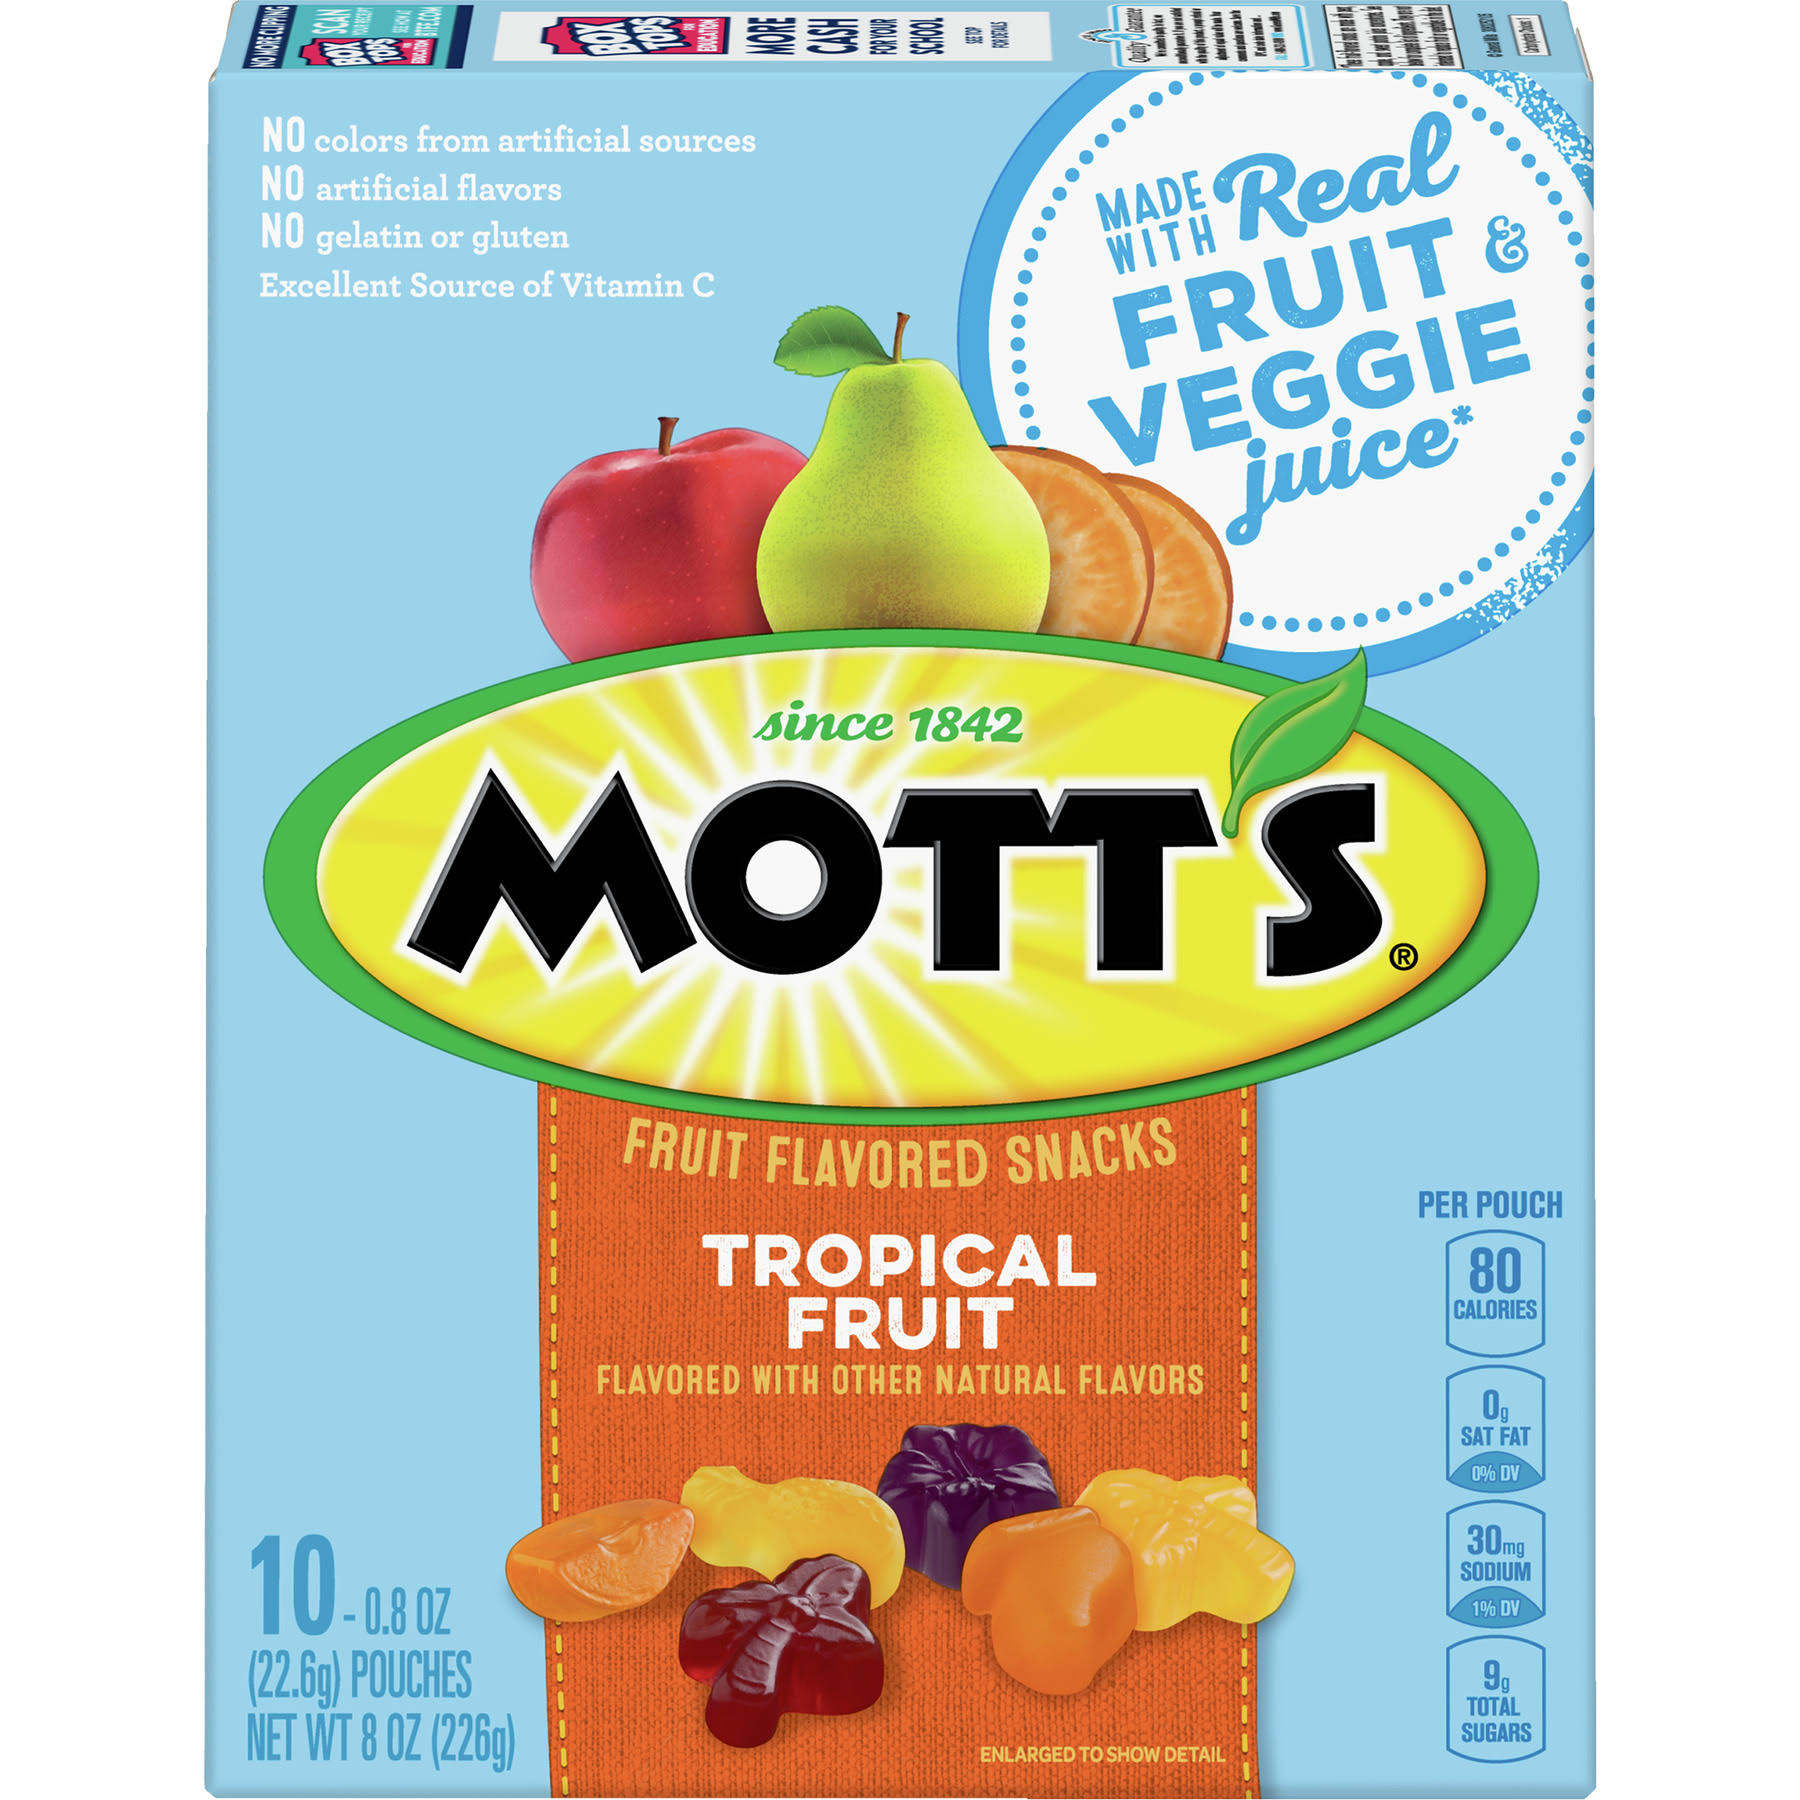 Motts Fruit Flavored Snacks, Tropical Fruit - 10 pack, 0.8 oz pouches